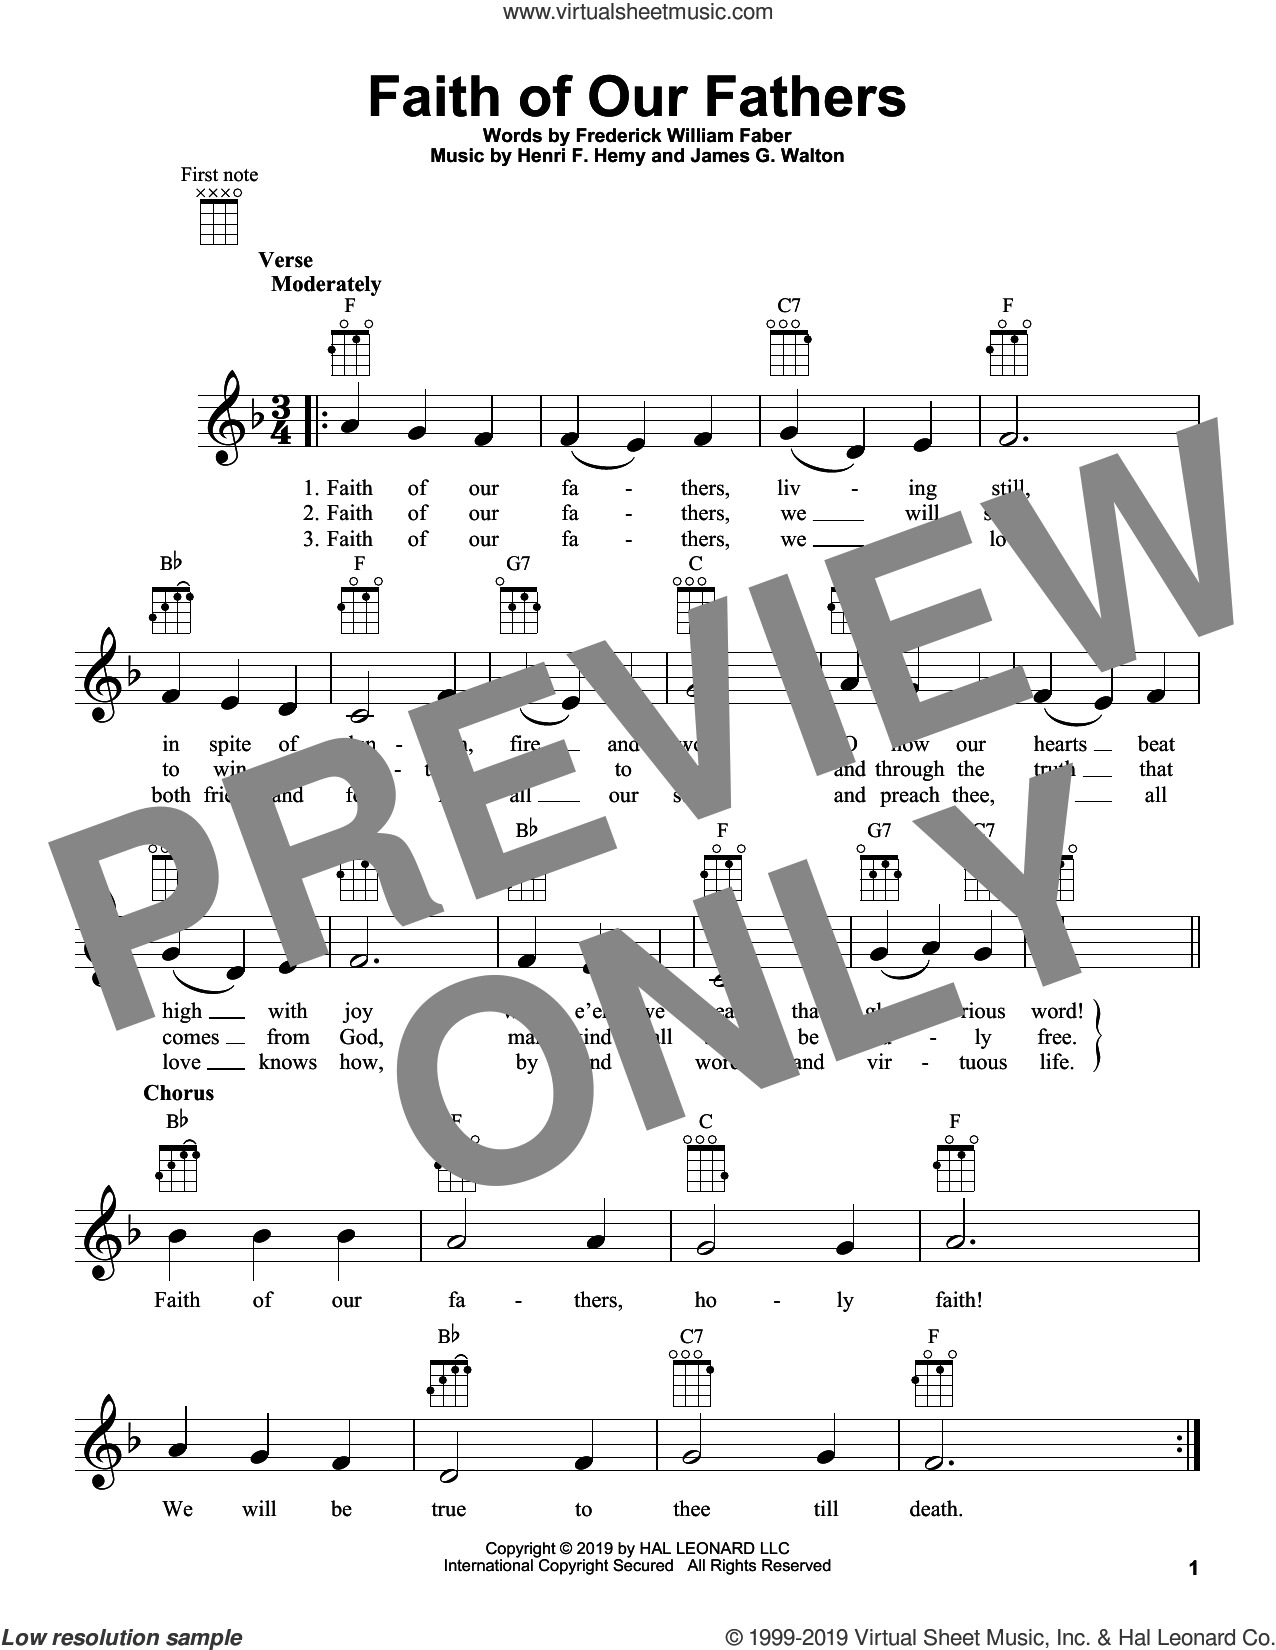 Faith Of Our Fathers sheet music for ukulele by Frederick William Faber, Henri F. Hemy and James G. Walton, intermediate skill level